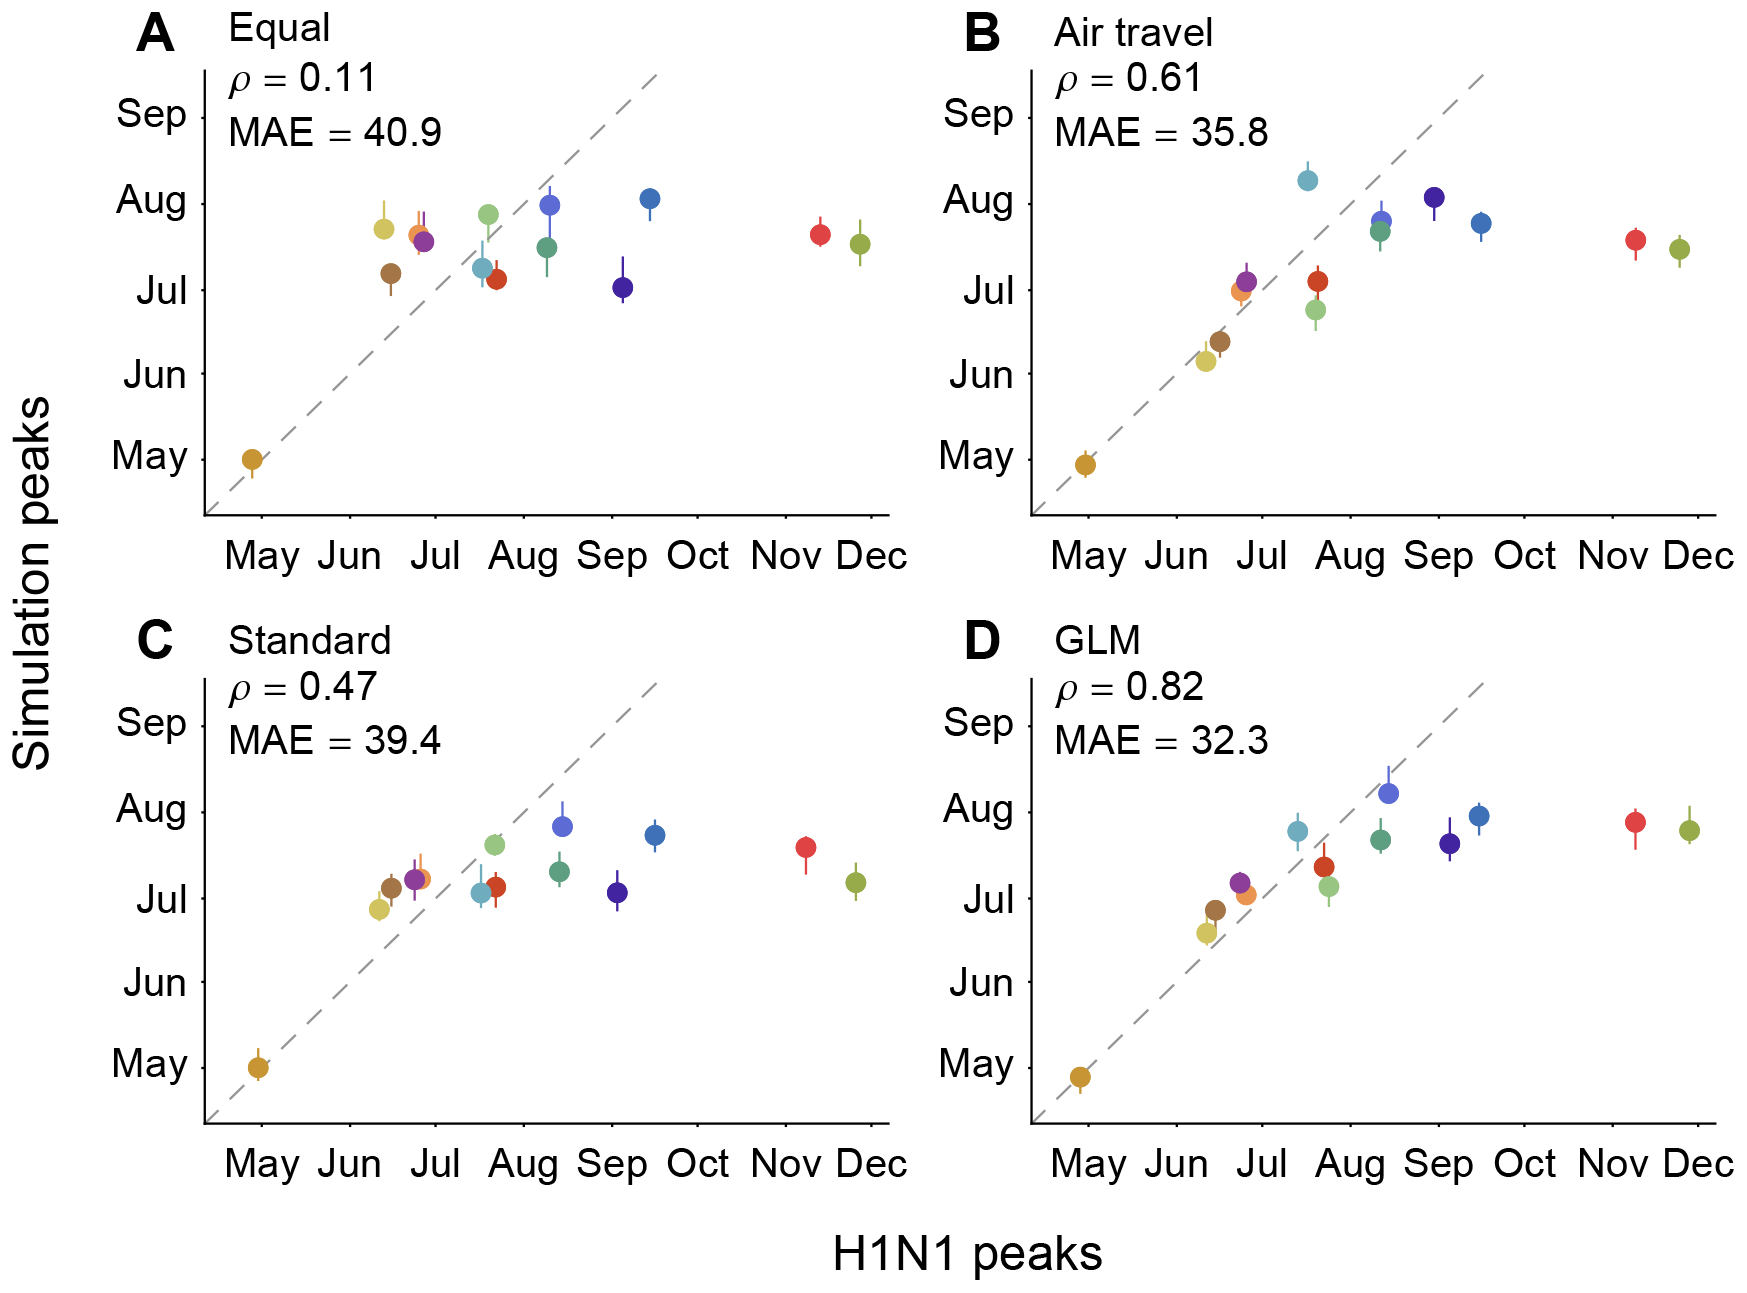 Correlation among observed H1N1 peaks and simulated peaks based on different migration rate models.